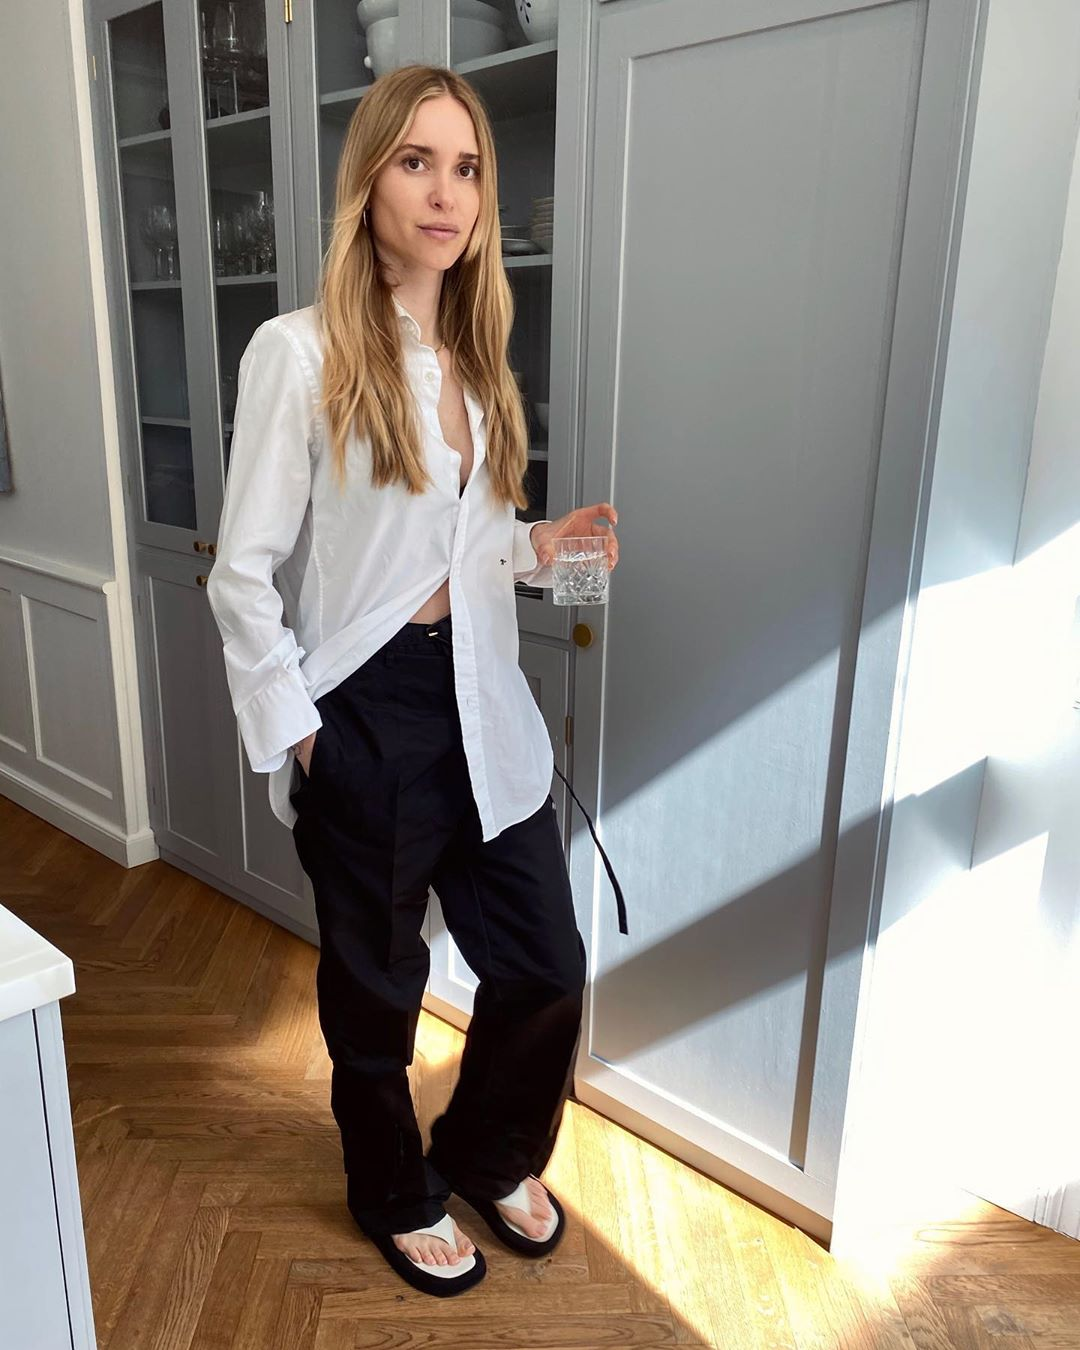 Pernille's Effortless Summer Look Can Easily Be Recreated